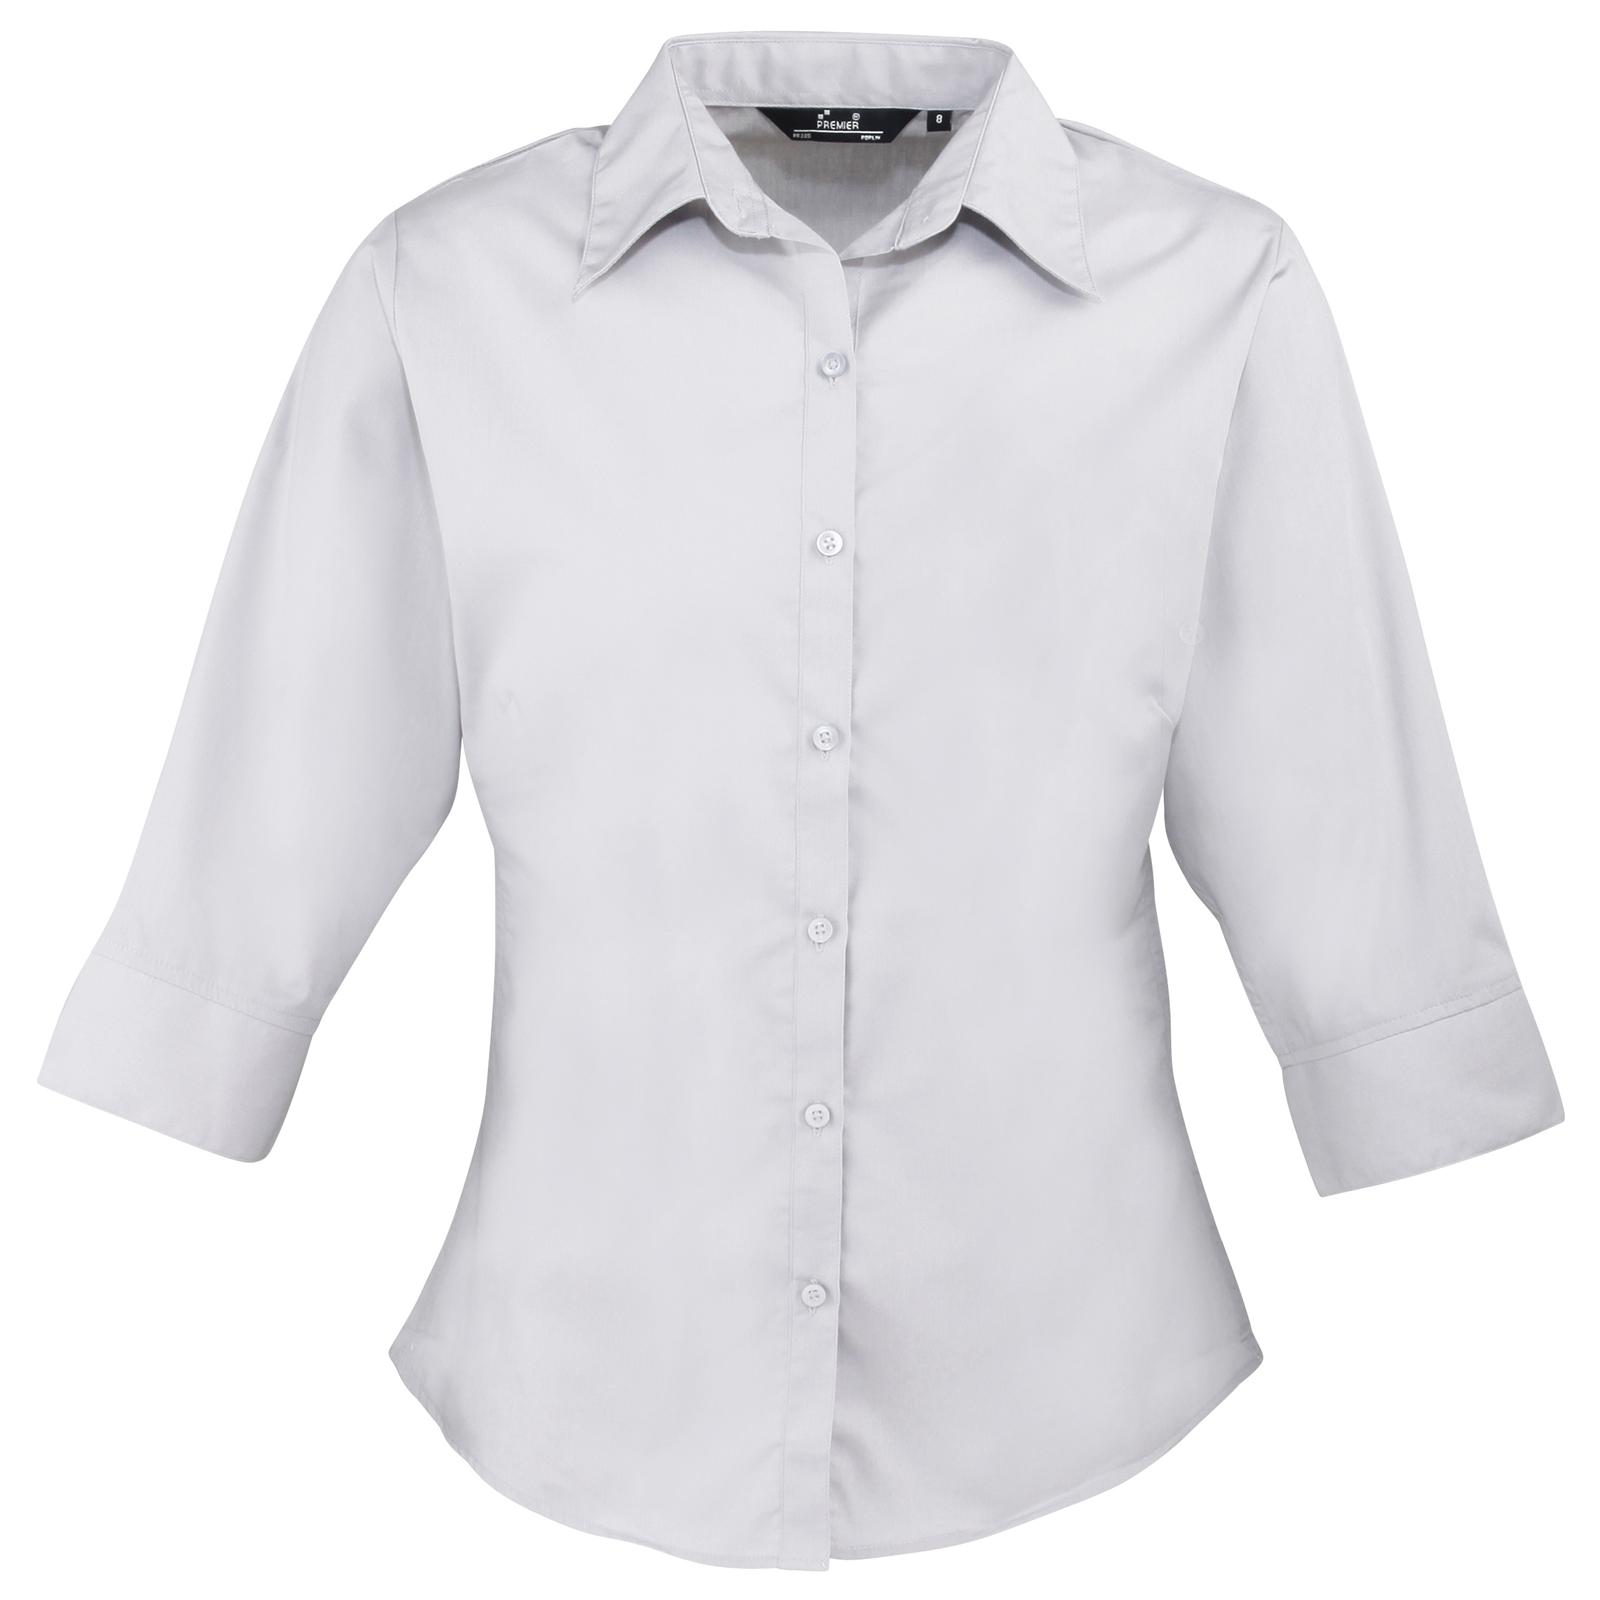 76669a3fe16d Womens Shirts And Blouses For Work - DREAMWORKS